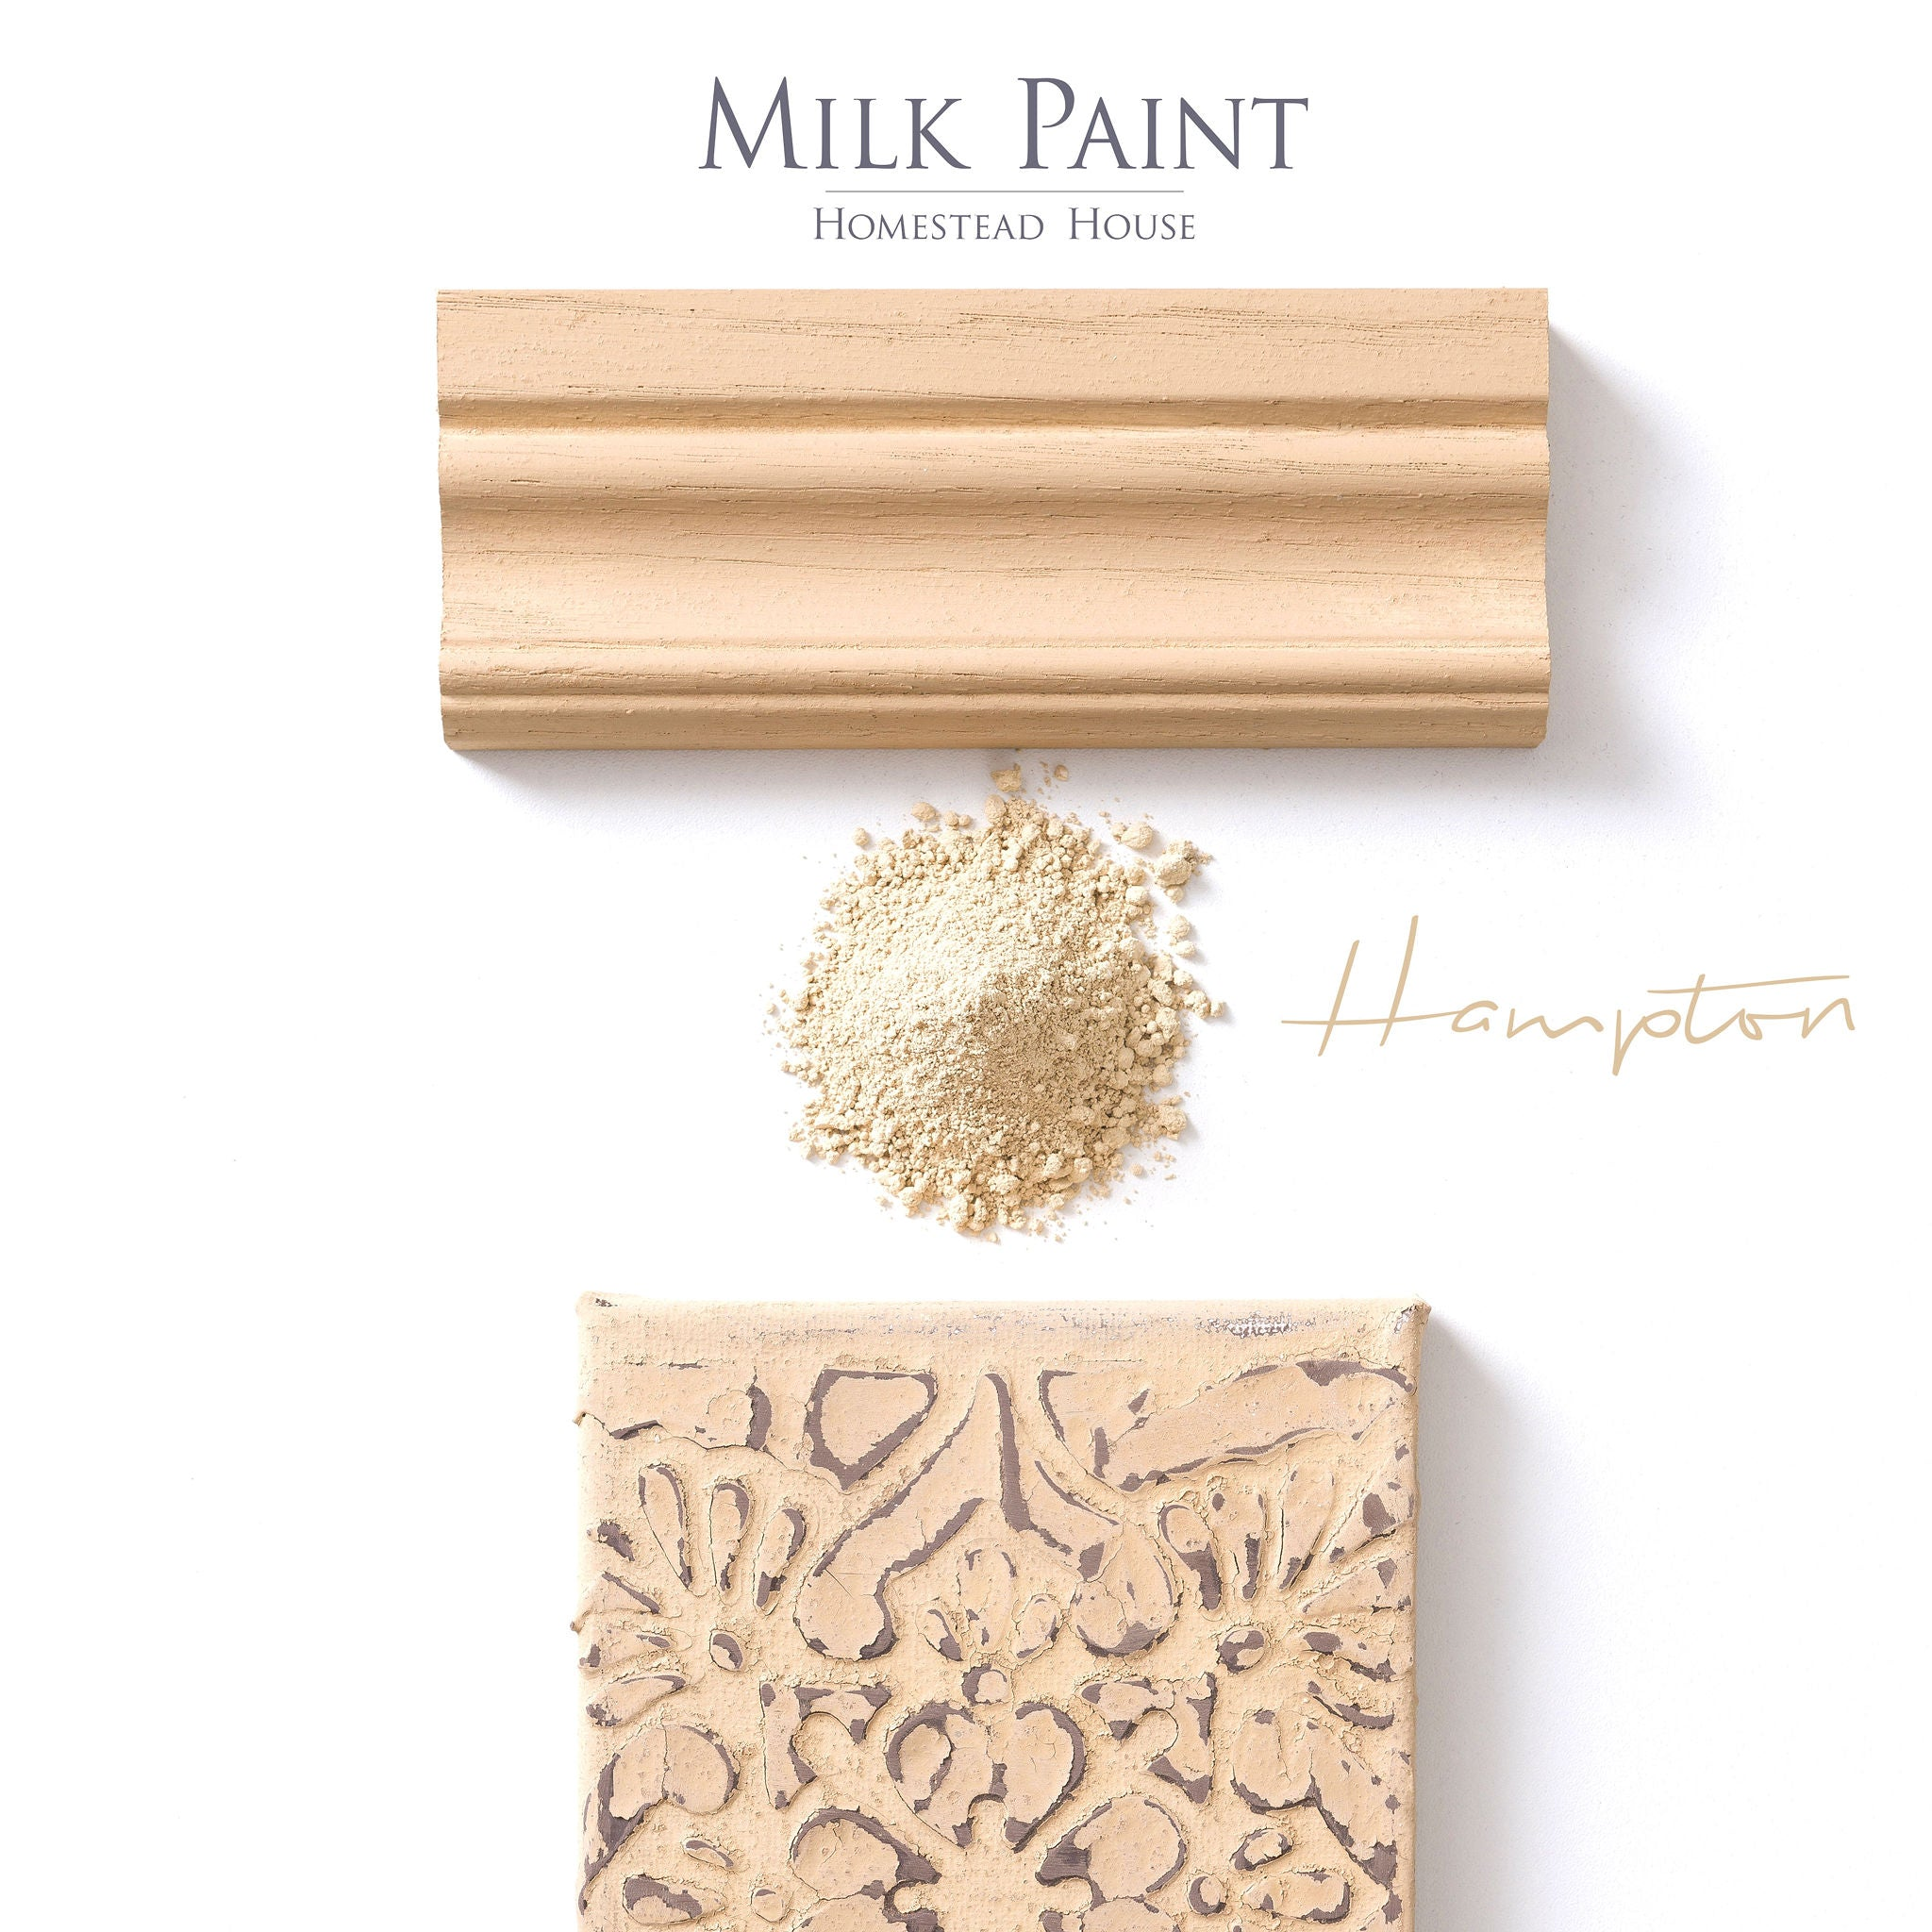 Hampton Milk Paint by Homestead House @ The Painted Heirloom